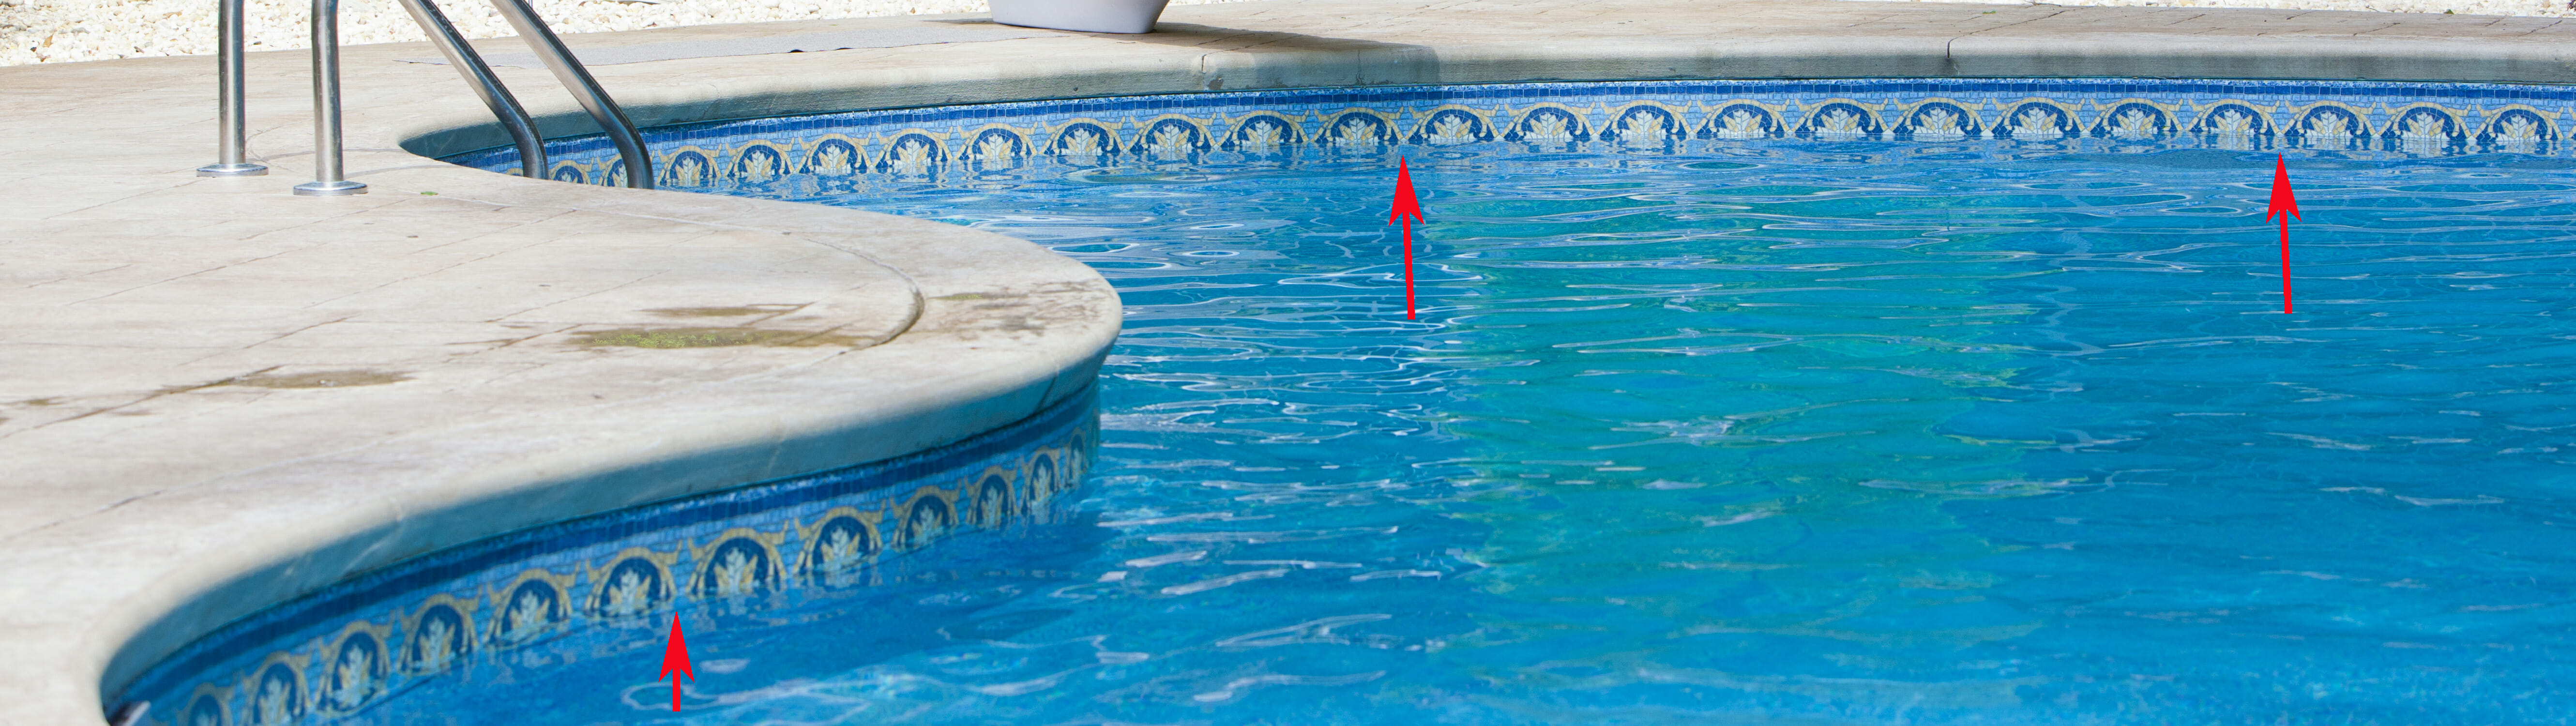 How to tell if pool level